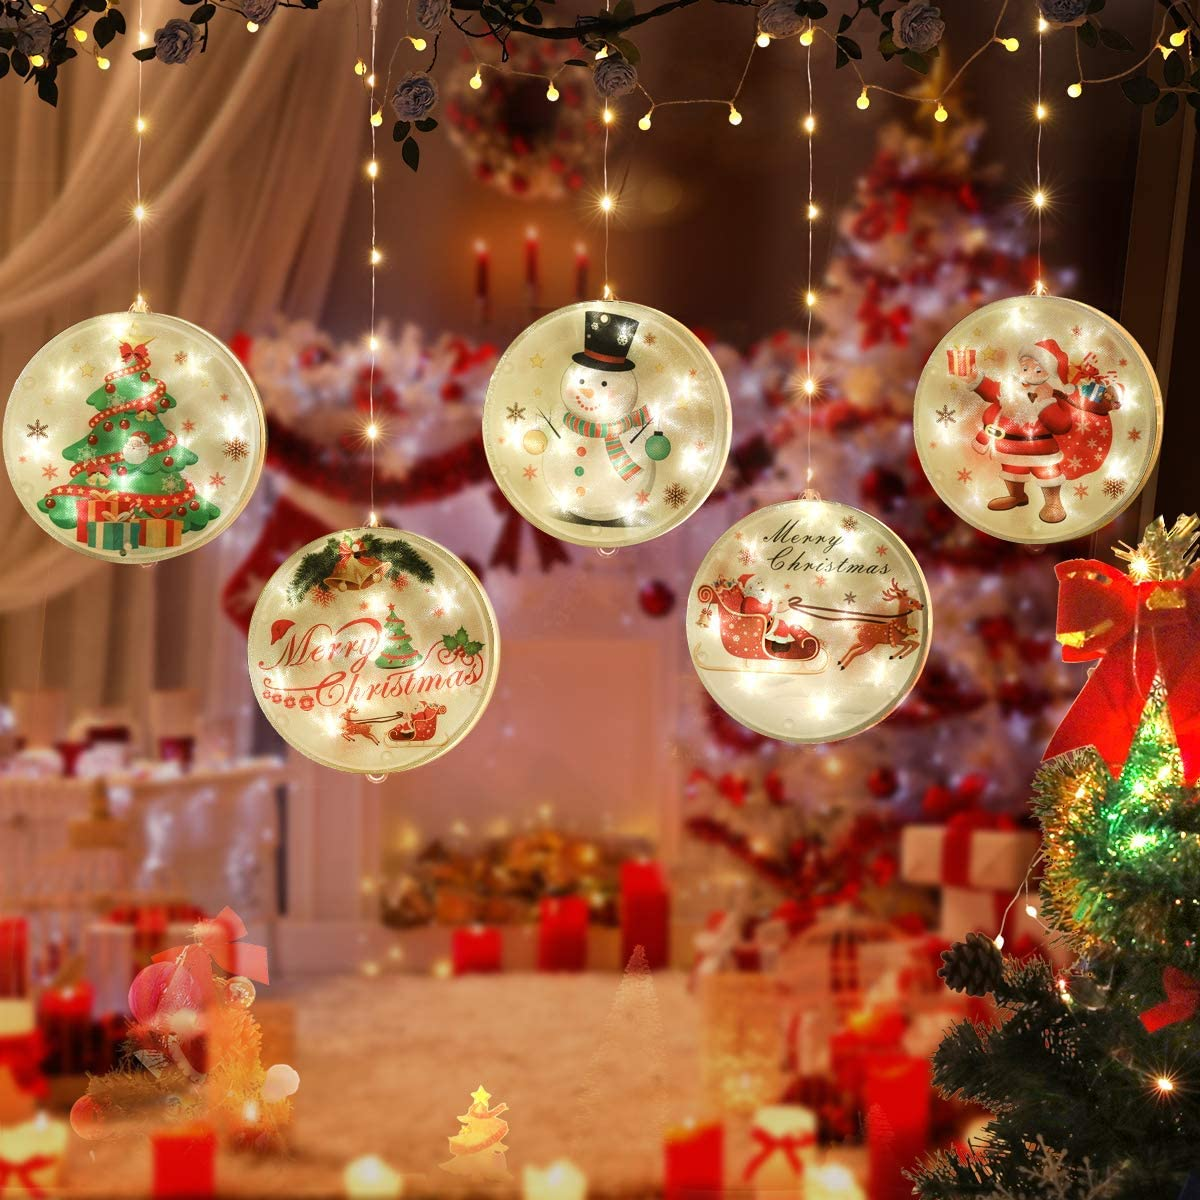 MILEXING Christmas String Lights, LED Christmas Decorations with 8 Flash Modes with 2 Charging Modes (Battery Charging-USB Charging) for Festival, Party, Indoor Outdoor Christmas Decor (Flashing)